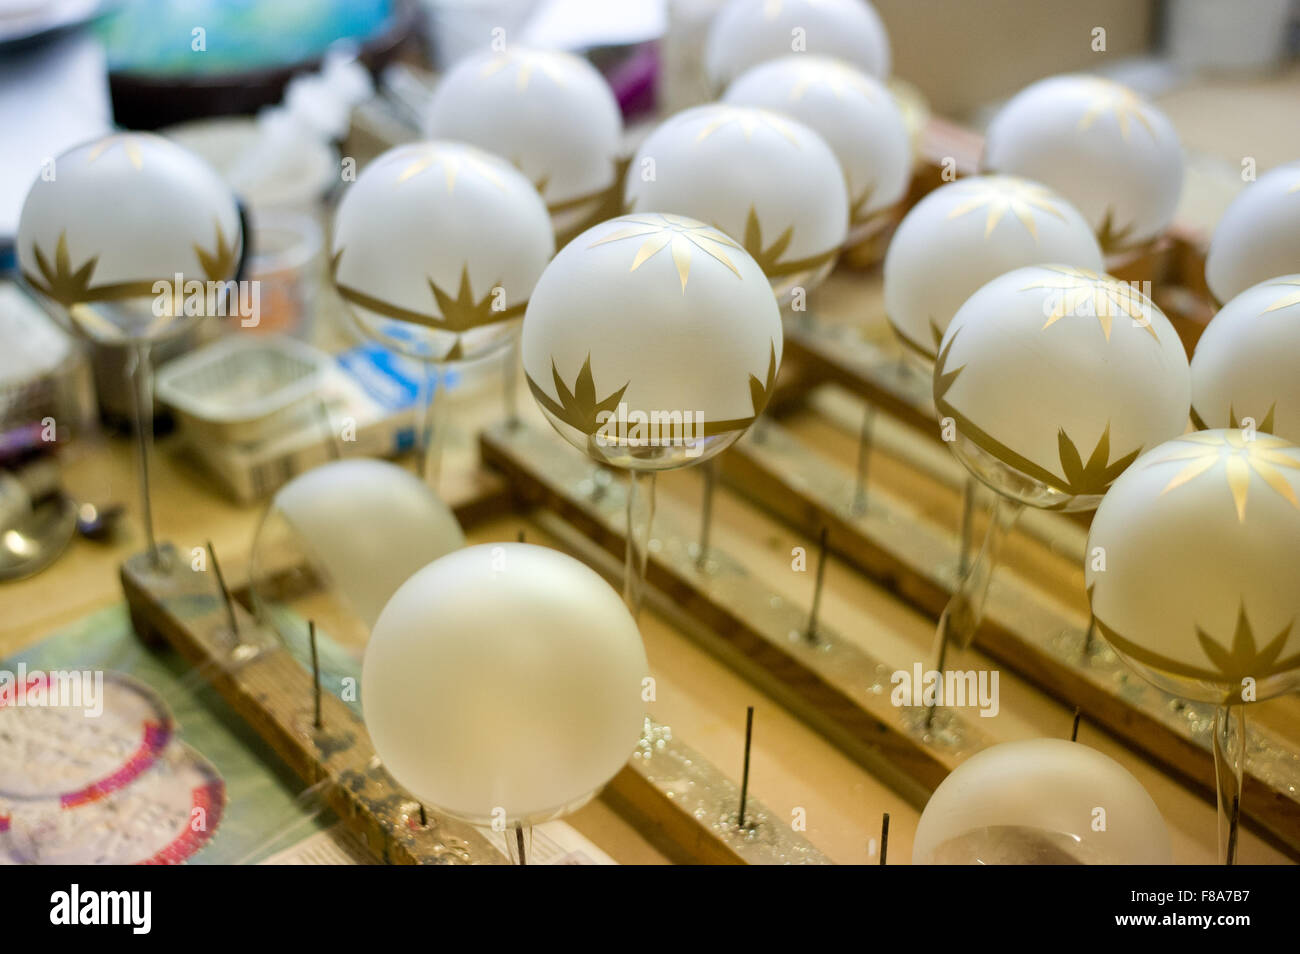 Piotrkow Trybunalski, Poland. 7th December, 2015. Unfinished Christmas balls pictured  at 'Szkło-Decor' - Stock Image